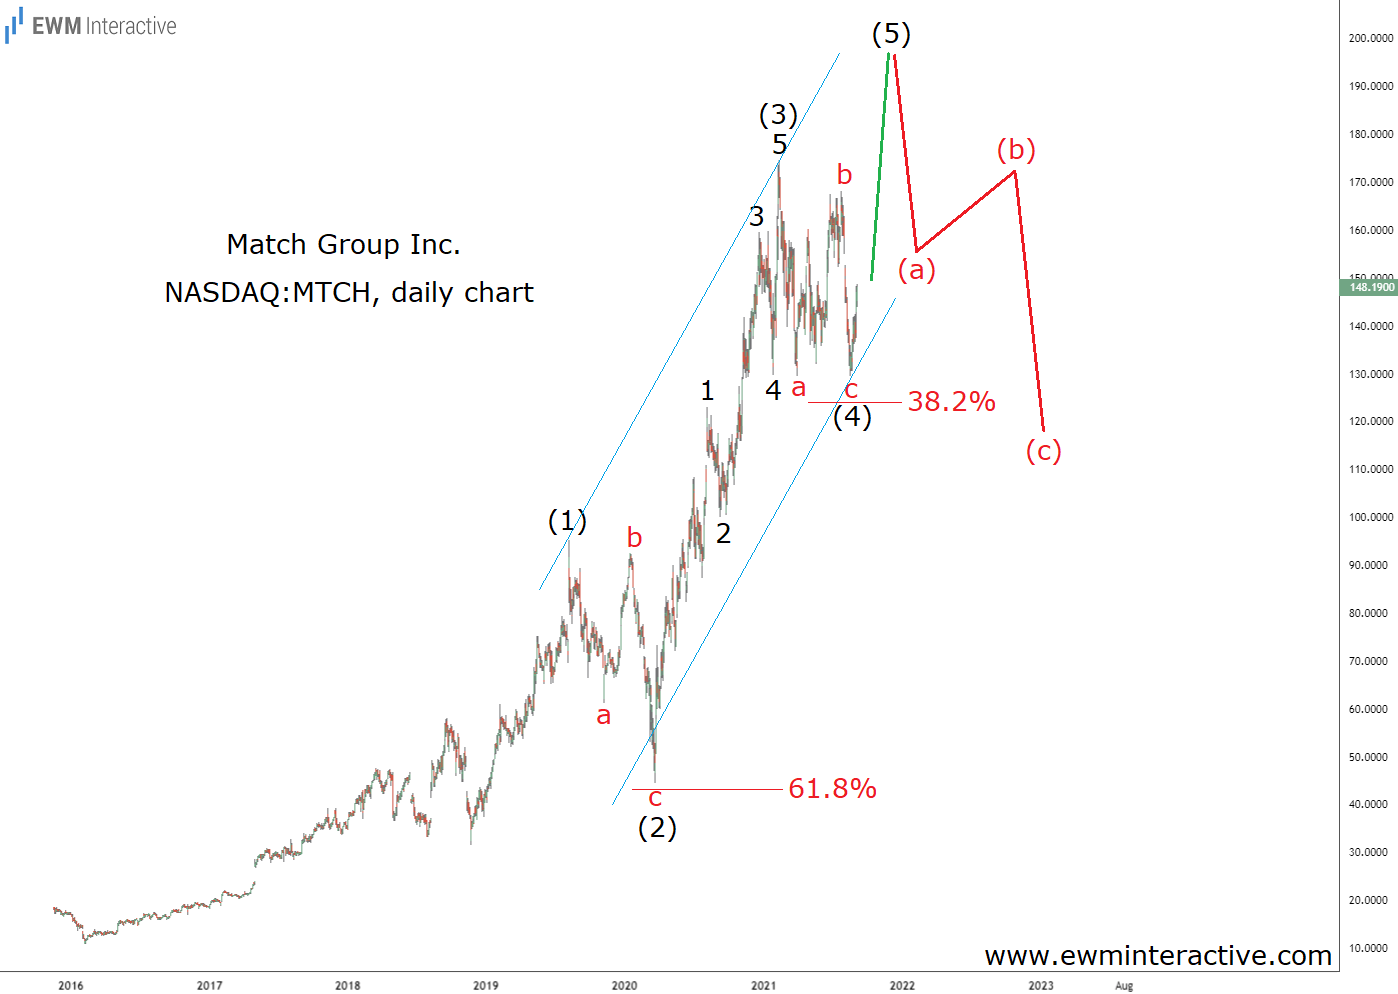 S&P 500 inclusion means Match stock can reach $200